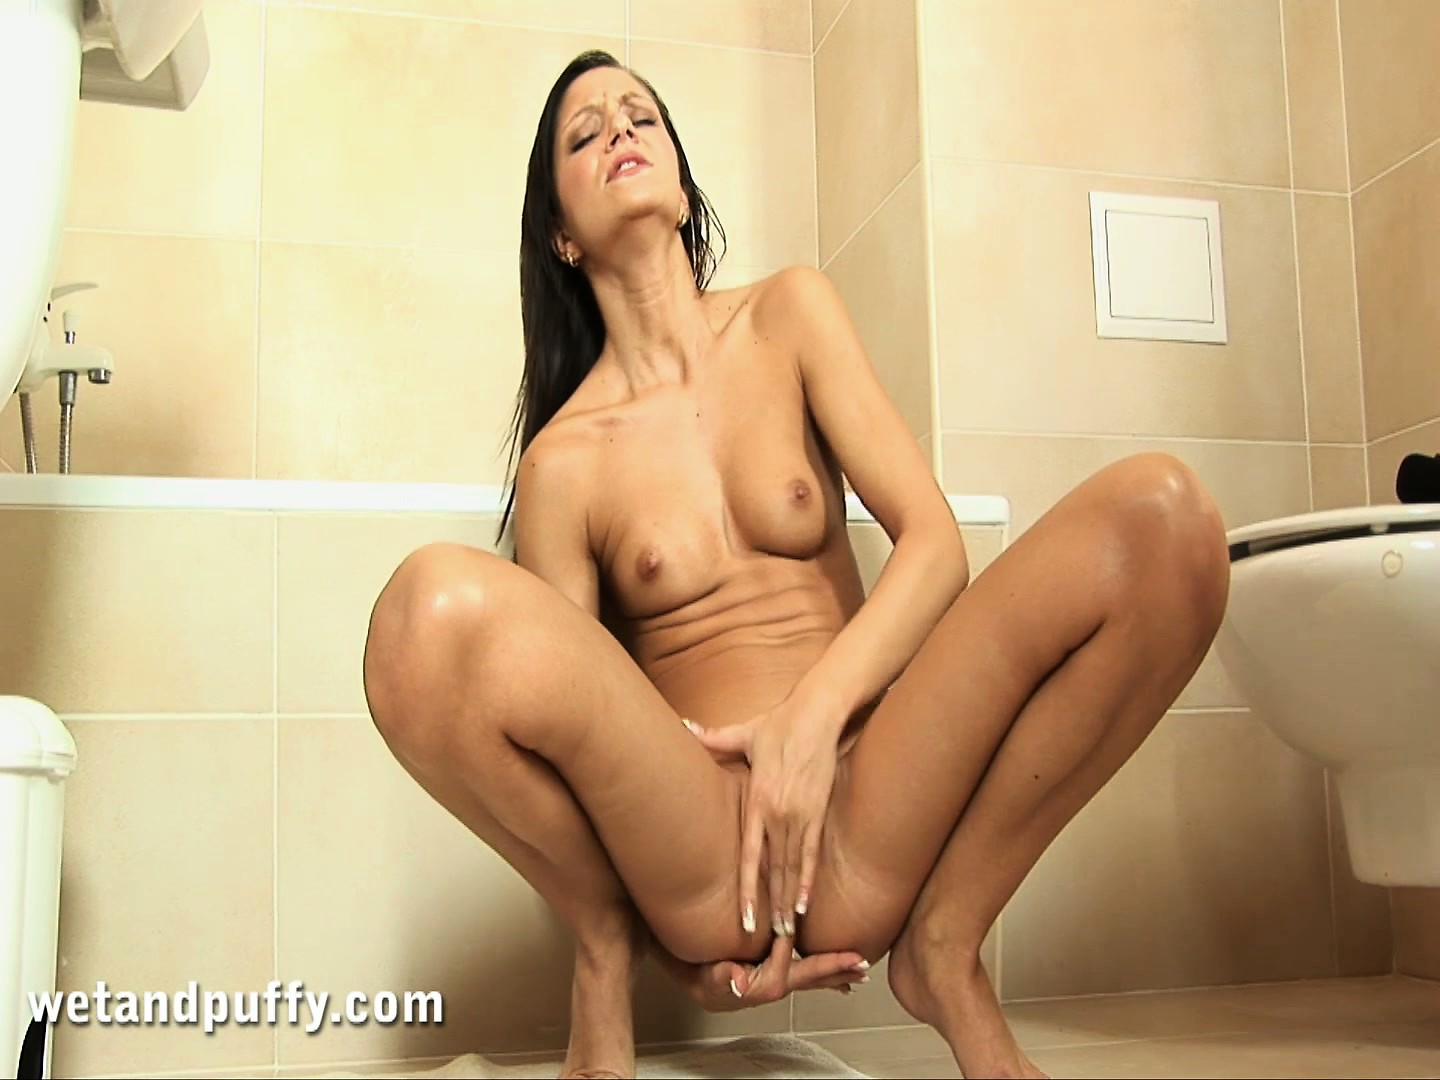 Porn Tube of Aiden Slides Her Fingers Deep In Her Tight Holes And Her Body Quivers With Delight